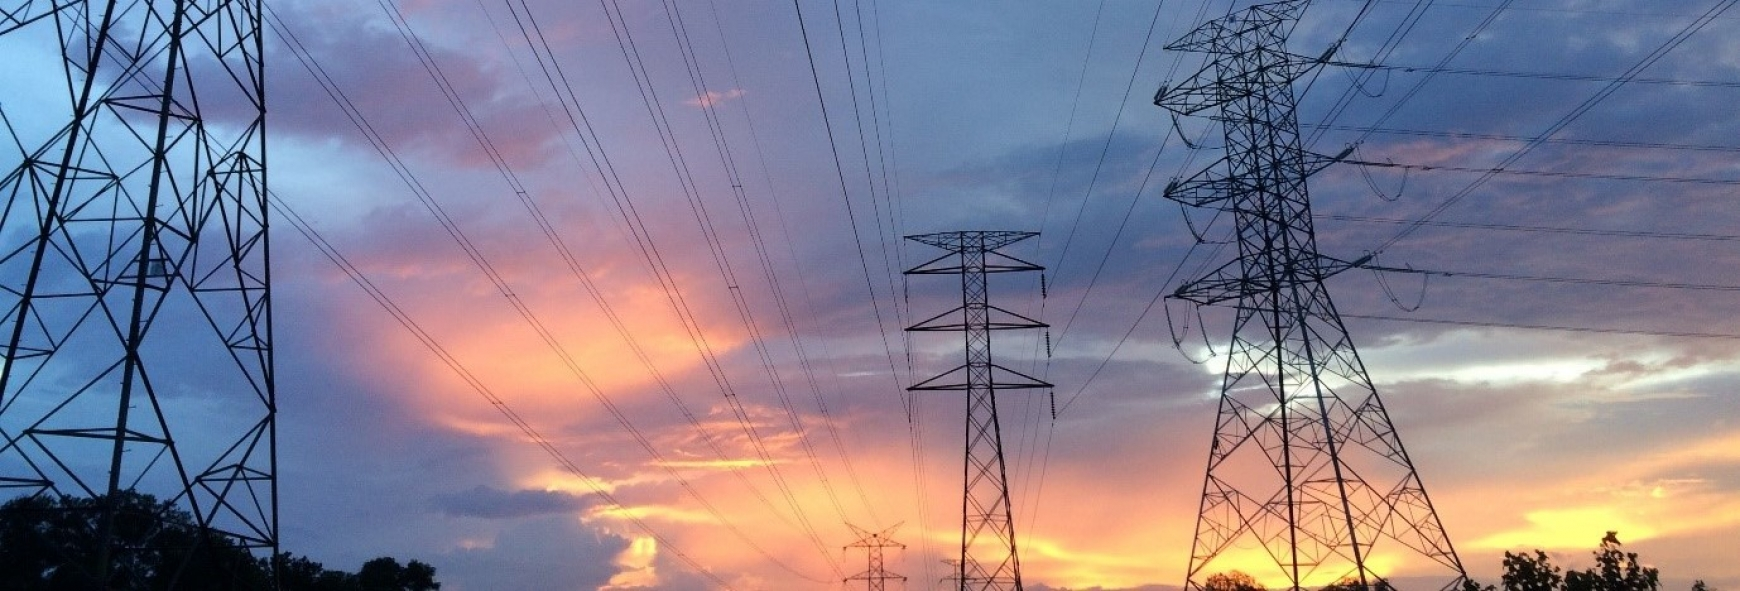 Electricity pylons with a sunset in the background